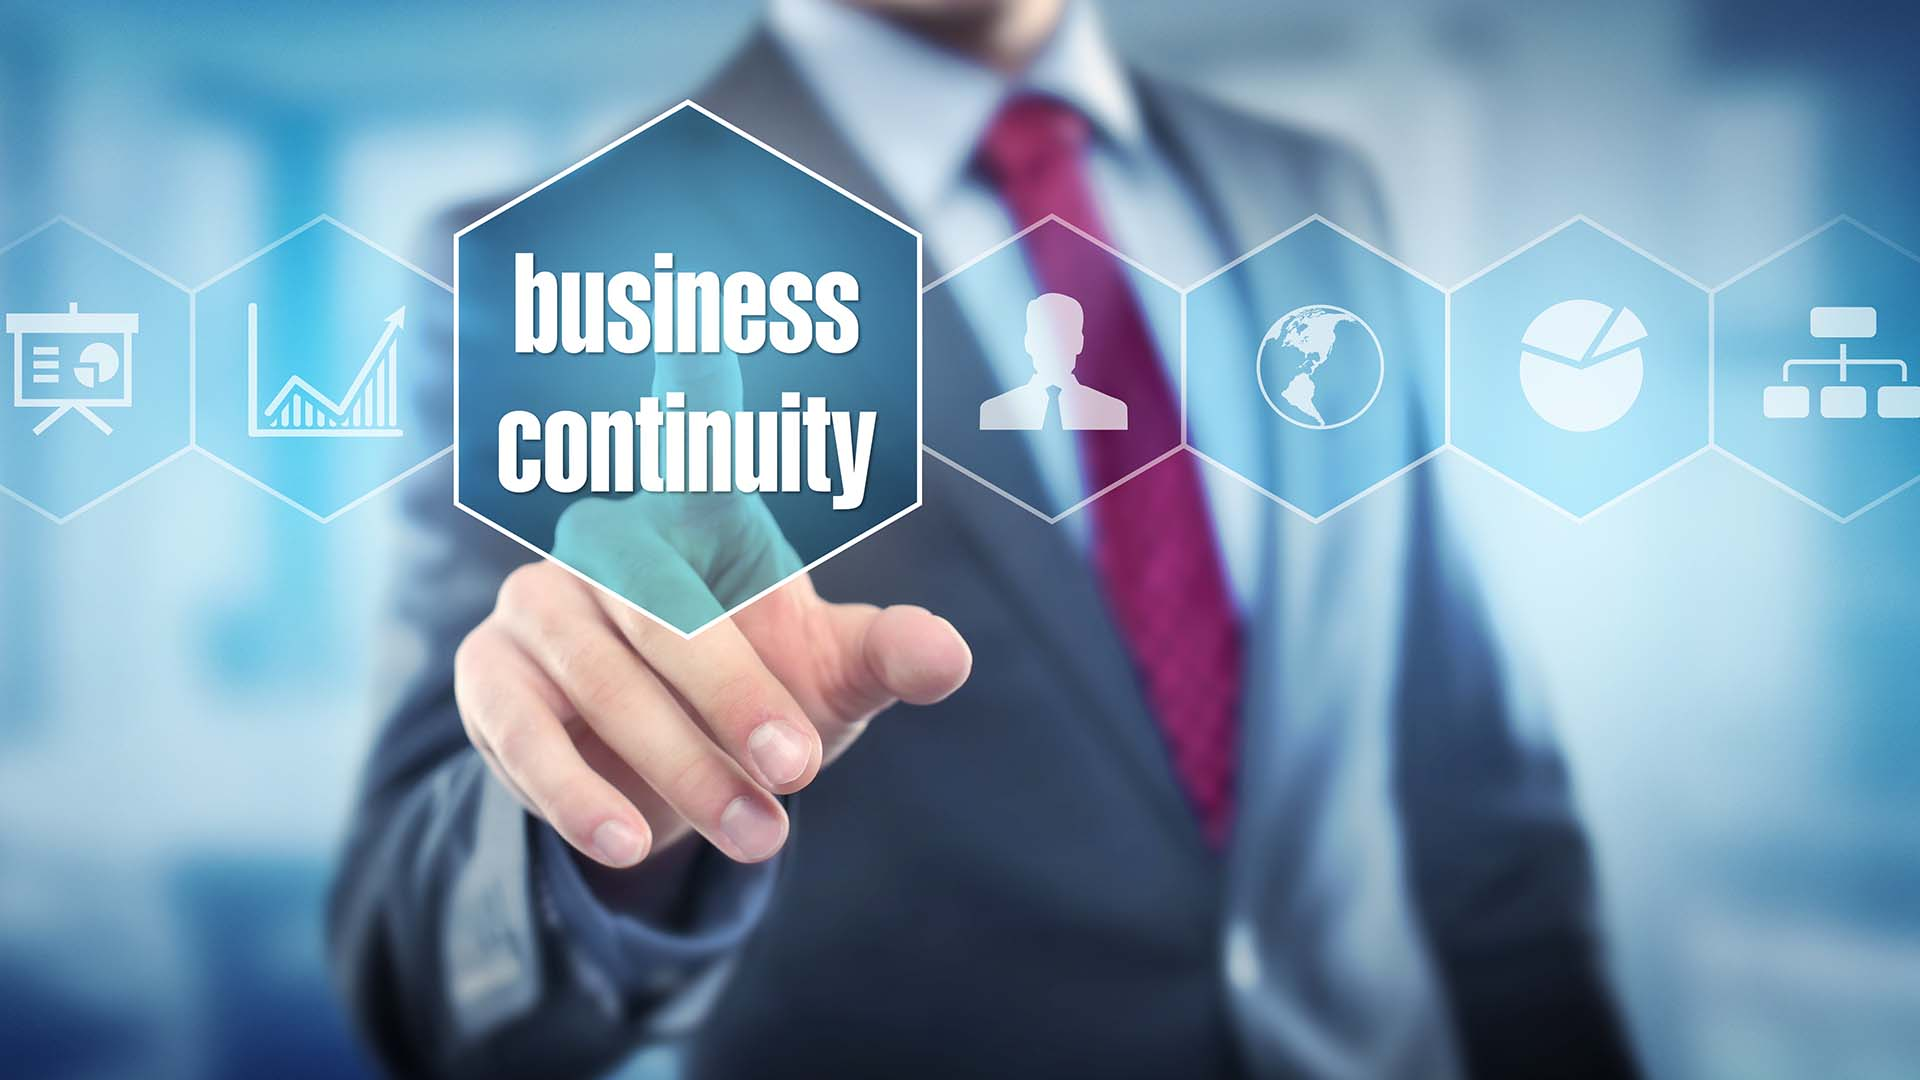 How to Develop a Cutting-Edge Business Continuity Plan